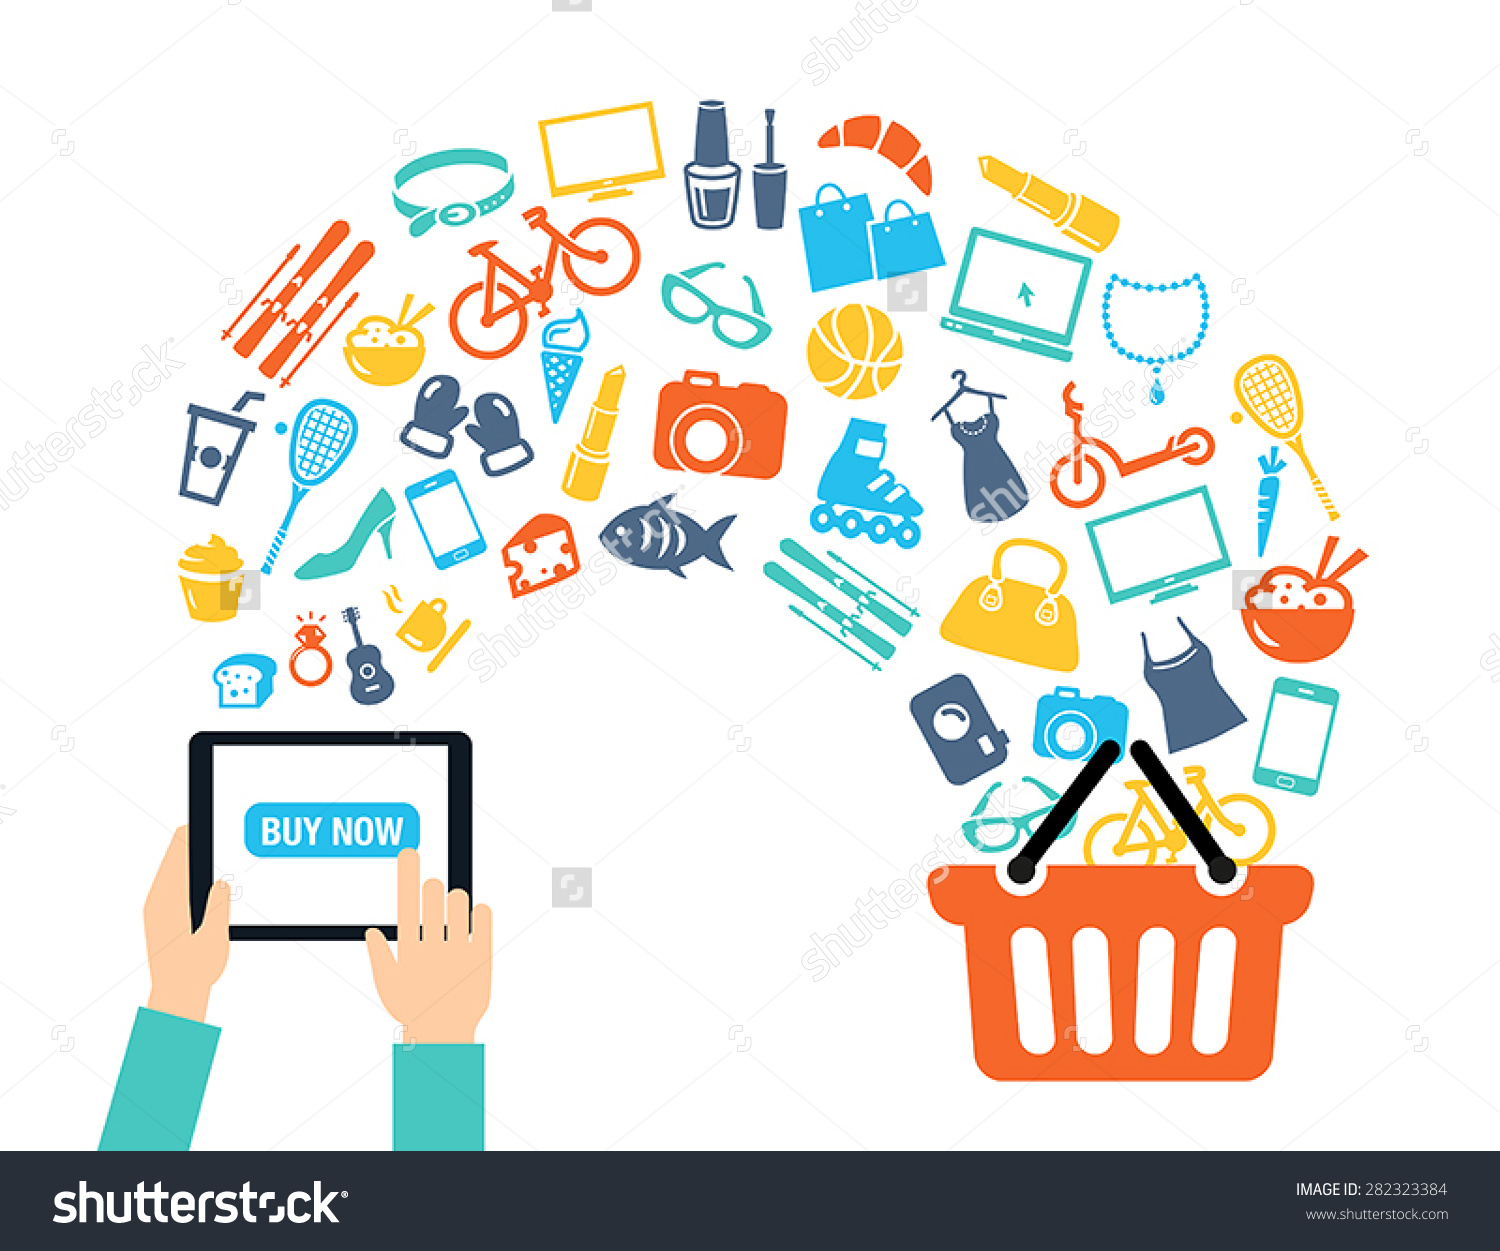 Shopping Background Concept Icons Shopping Online Stock Vector.